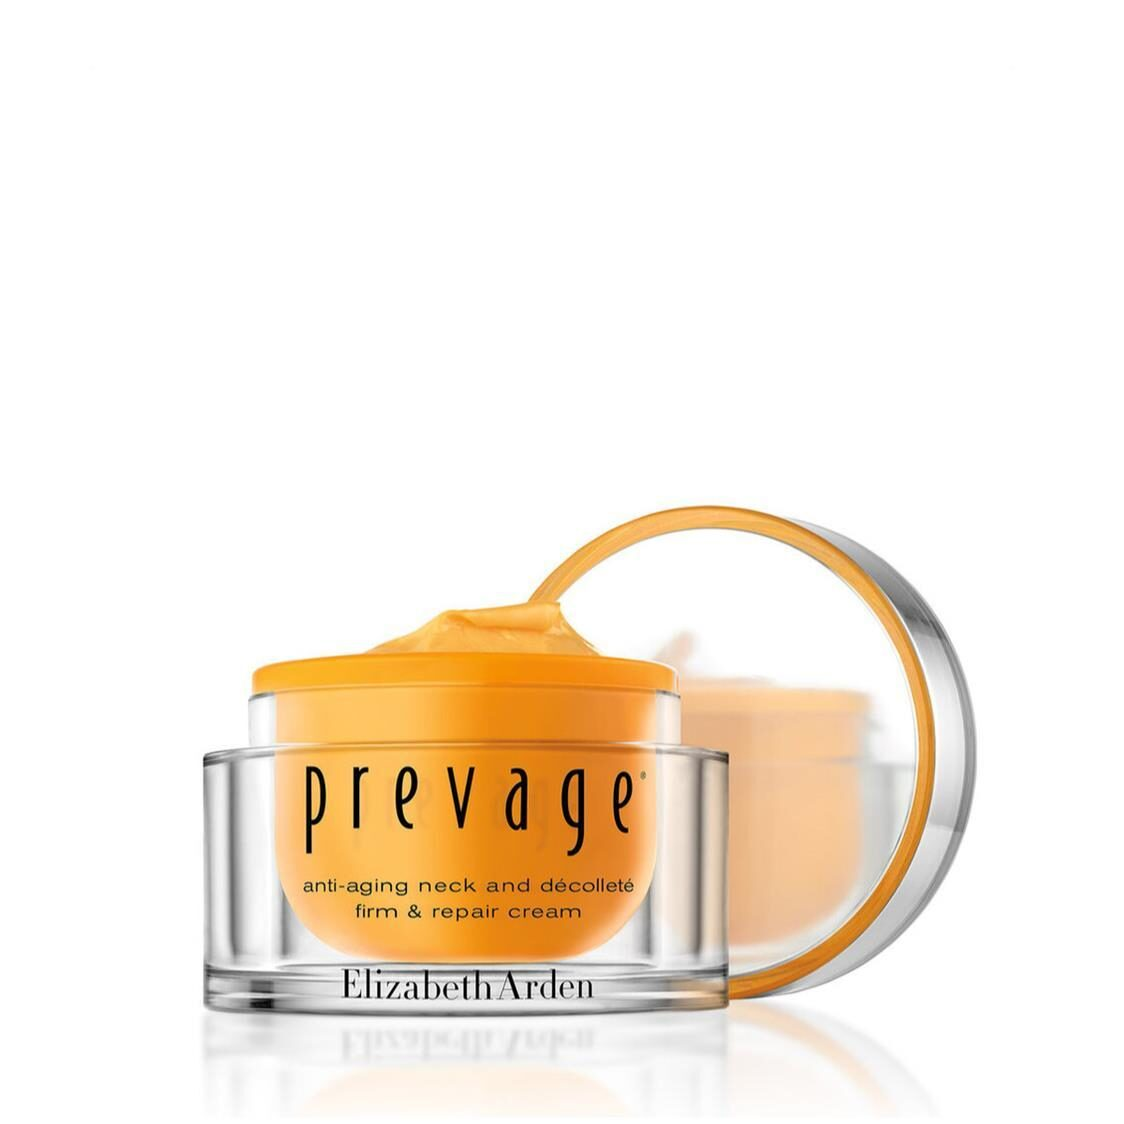 Elizabeth Arden PREVAGE Anti-Aging Neck and Dcollet Firm  Repair Cream